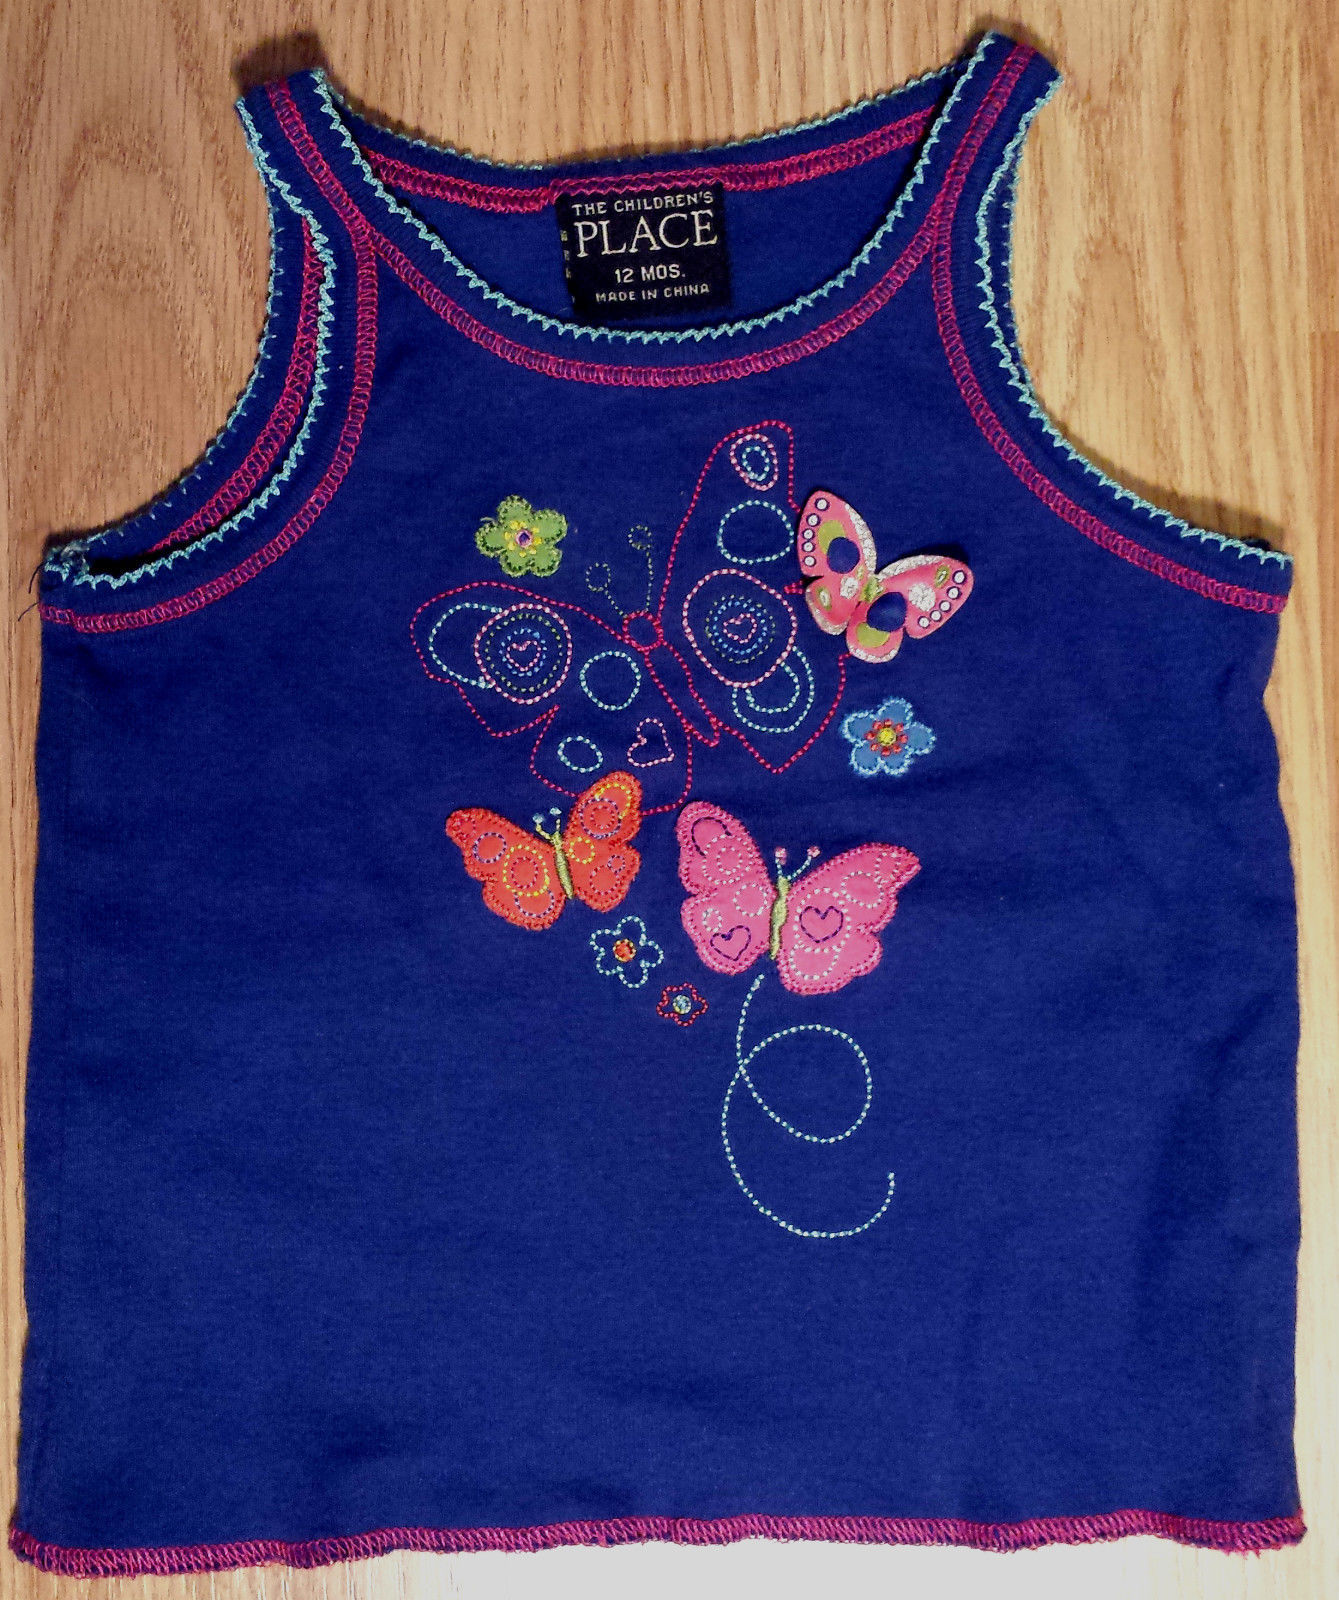 Girl's Size 12 M 9-12 Months 2 Pc The Children's Place Blue Butterfly Top, Skirt